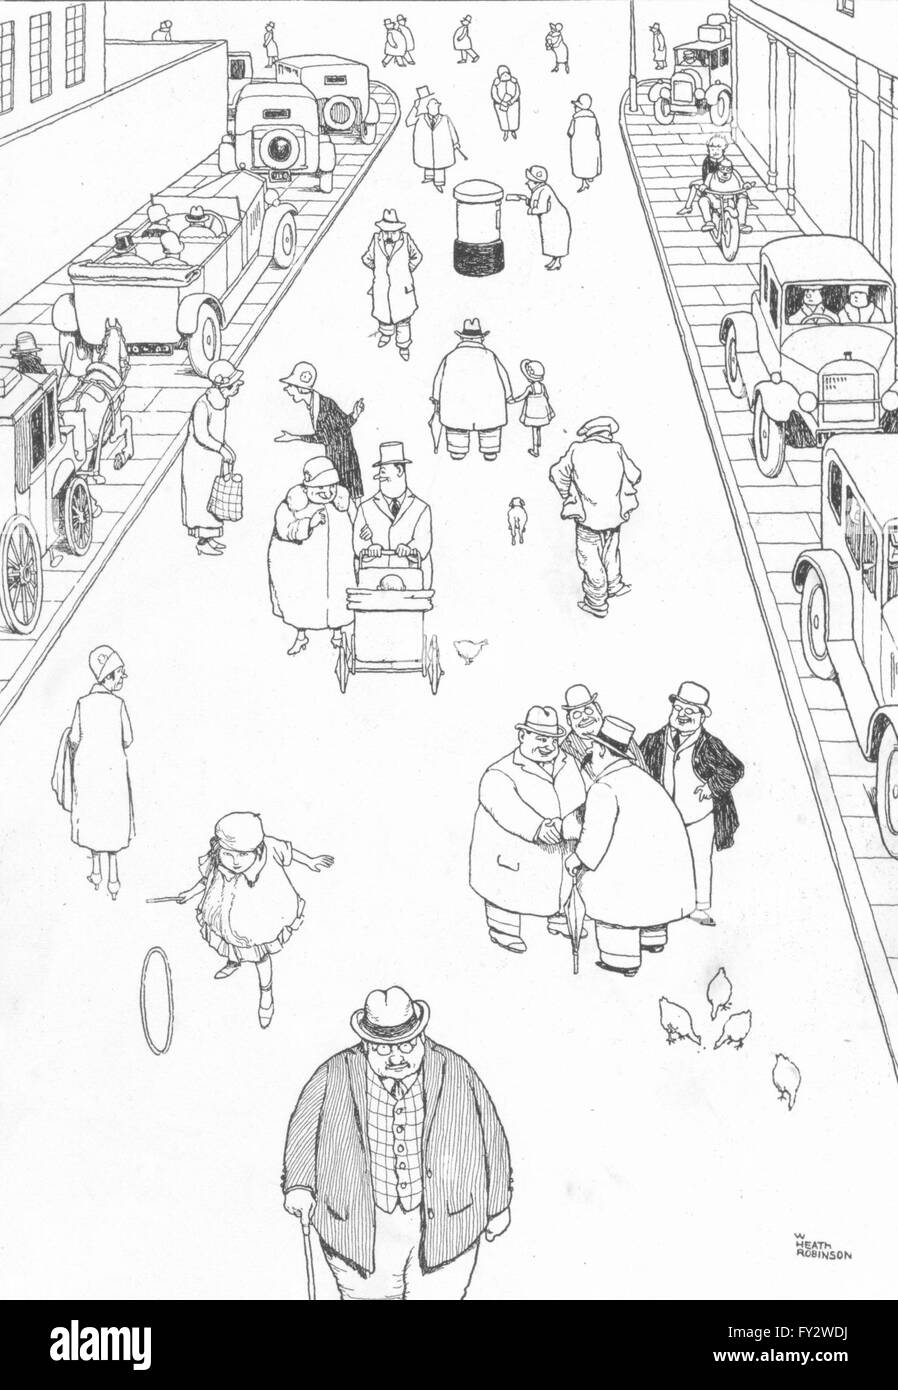 HEATH ROBINSON: New road regulations for the safety of pedestrians, 1935 - Stock Image